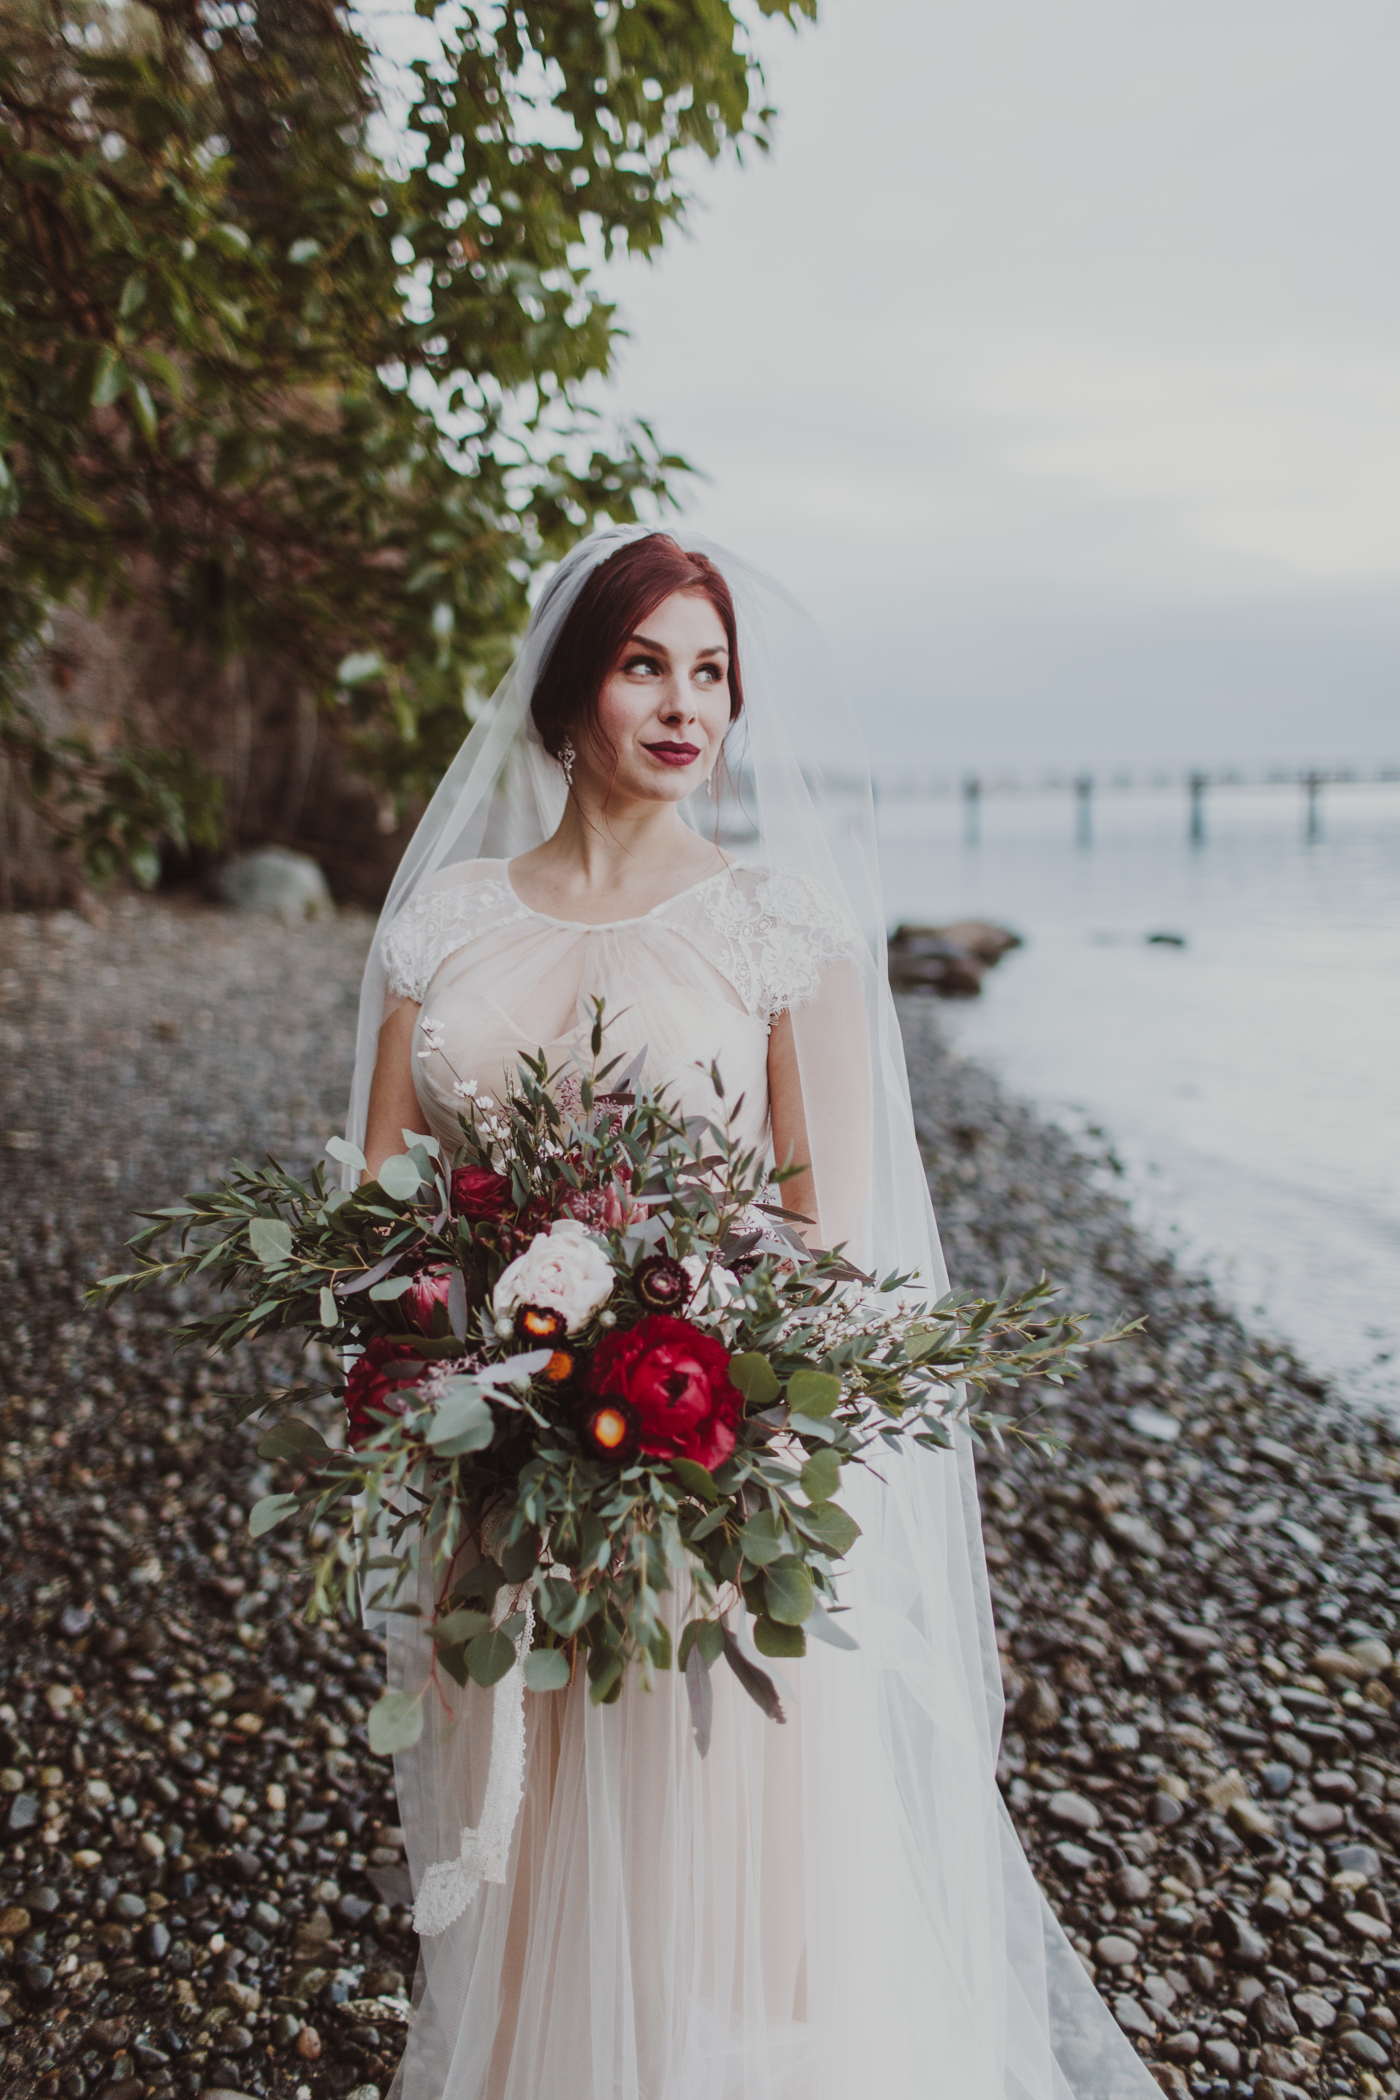 Olympic Peninsula Elopement-LizMorrow-95.jpg